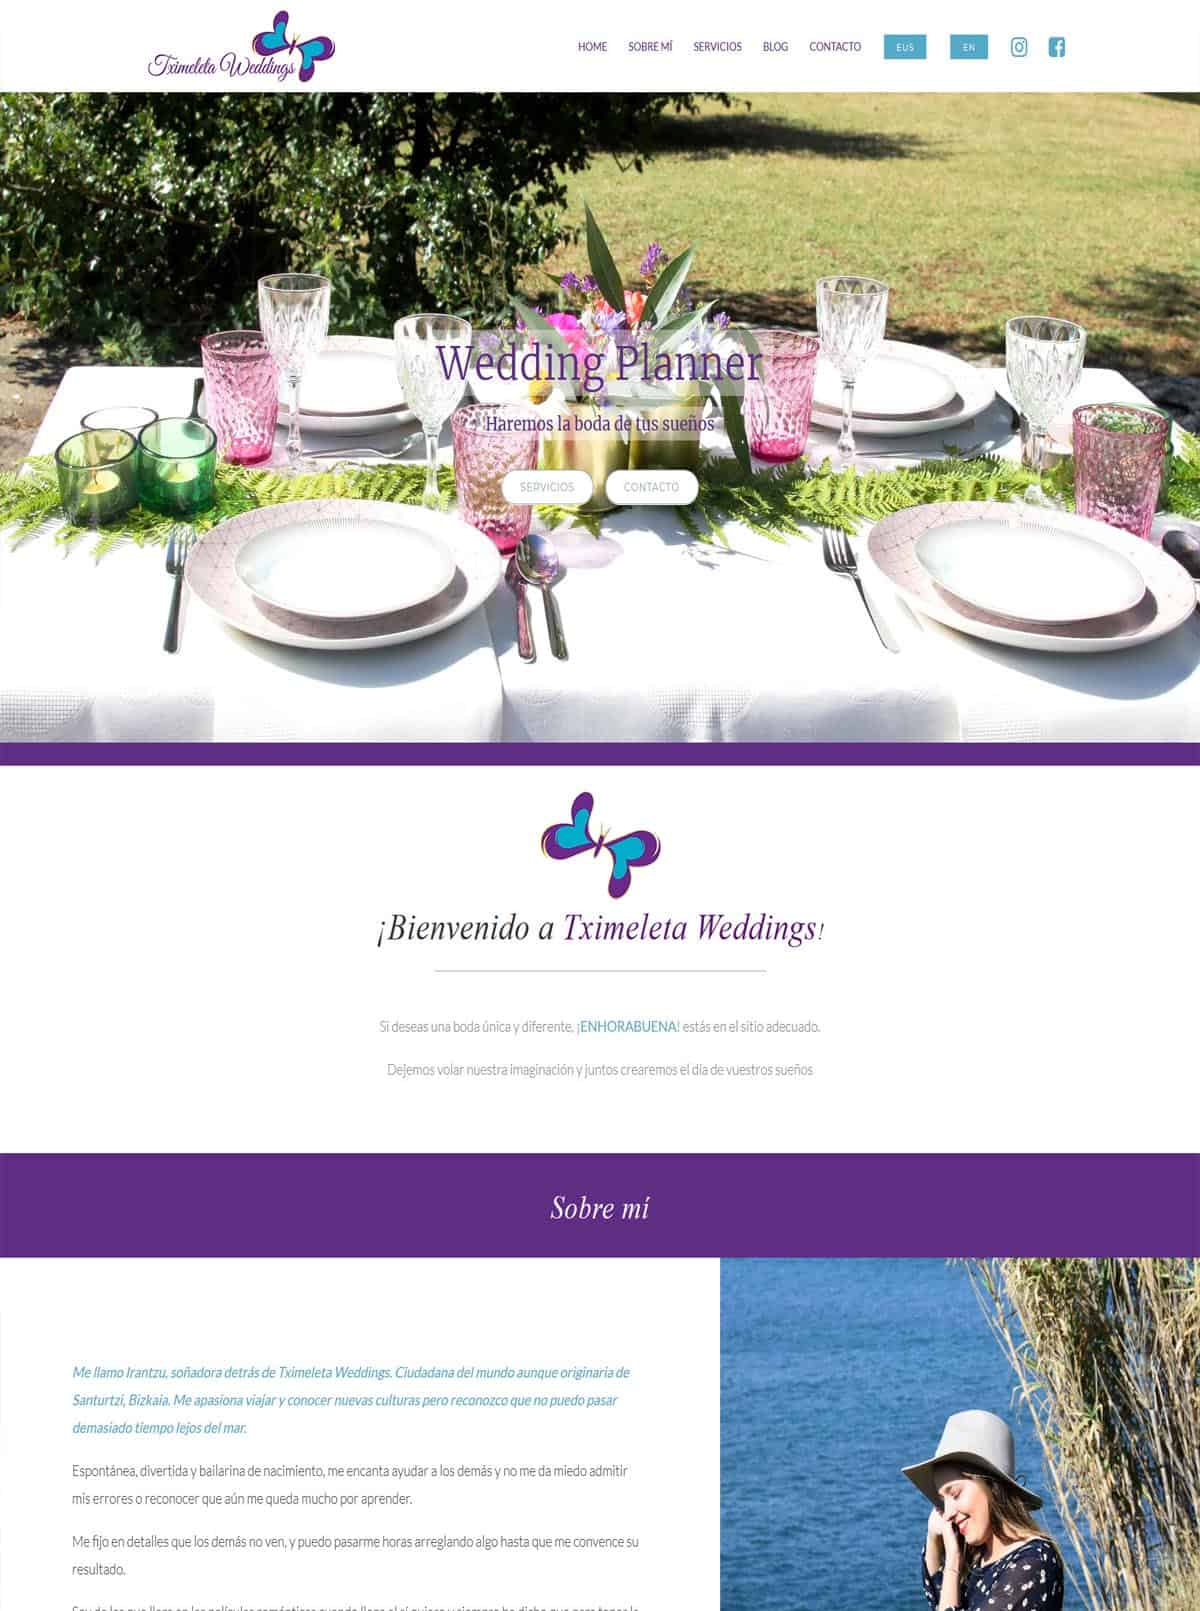 Tximeleta Weddings - Wedding Planner